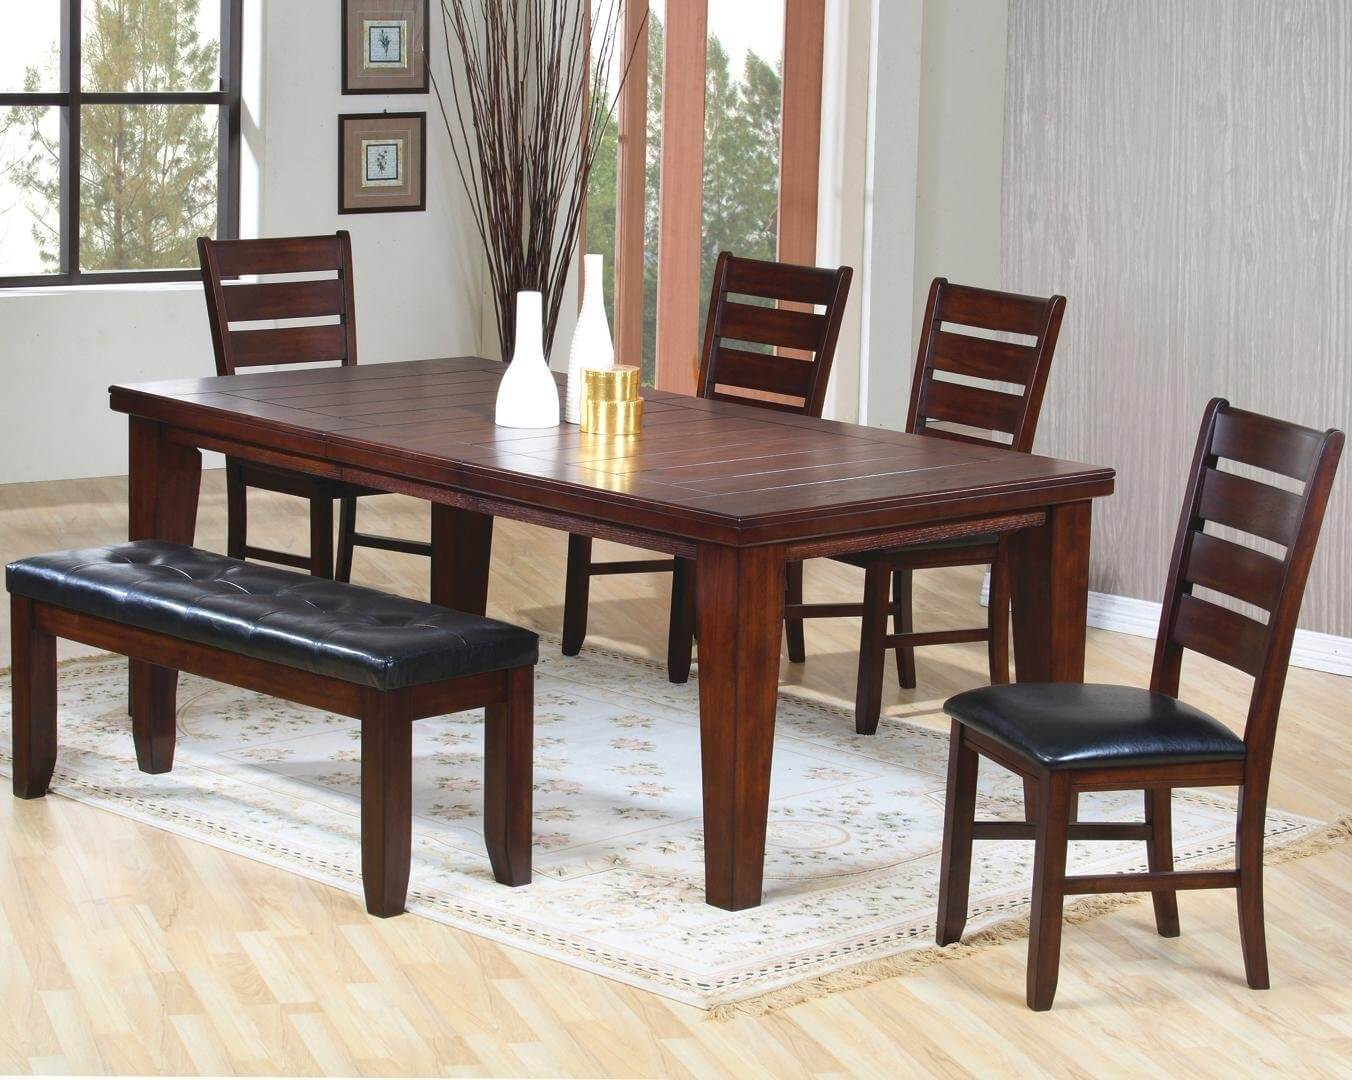 small kitchen table and chairs set rocking game chair 26 dining room sets big with bench seating 2019 solid wood six piece cushioned the finish is dark oak